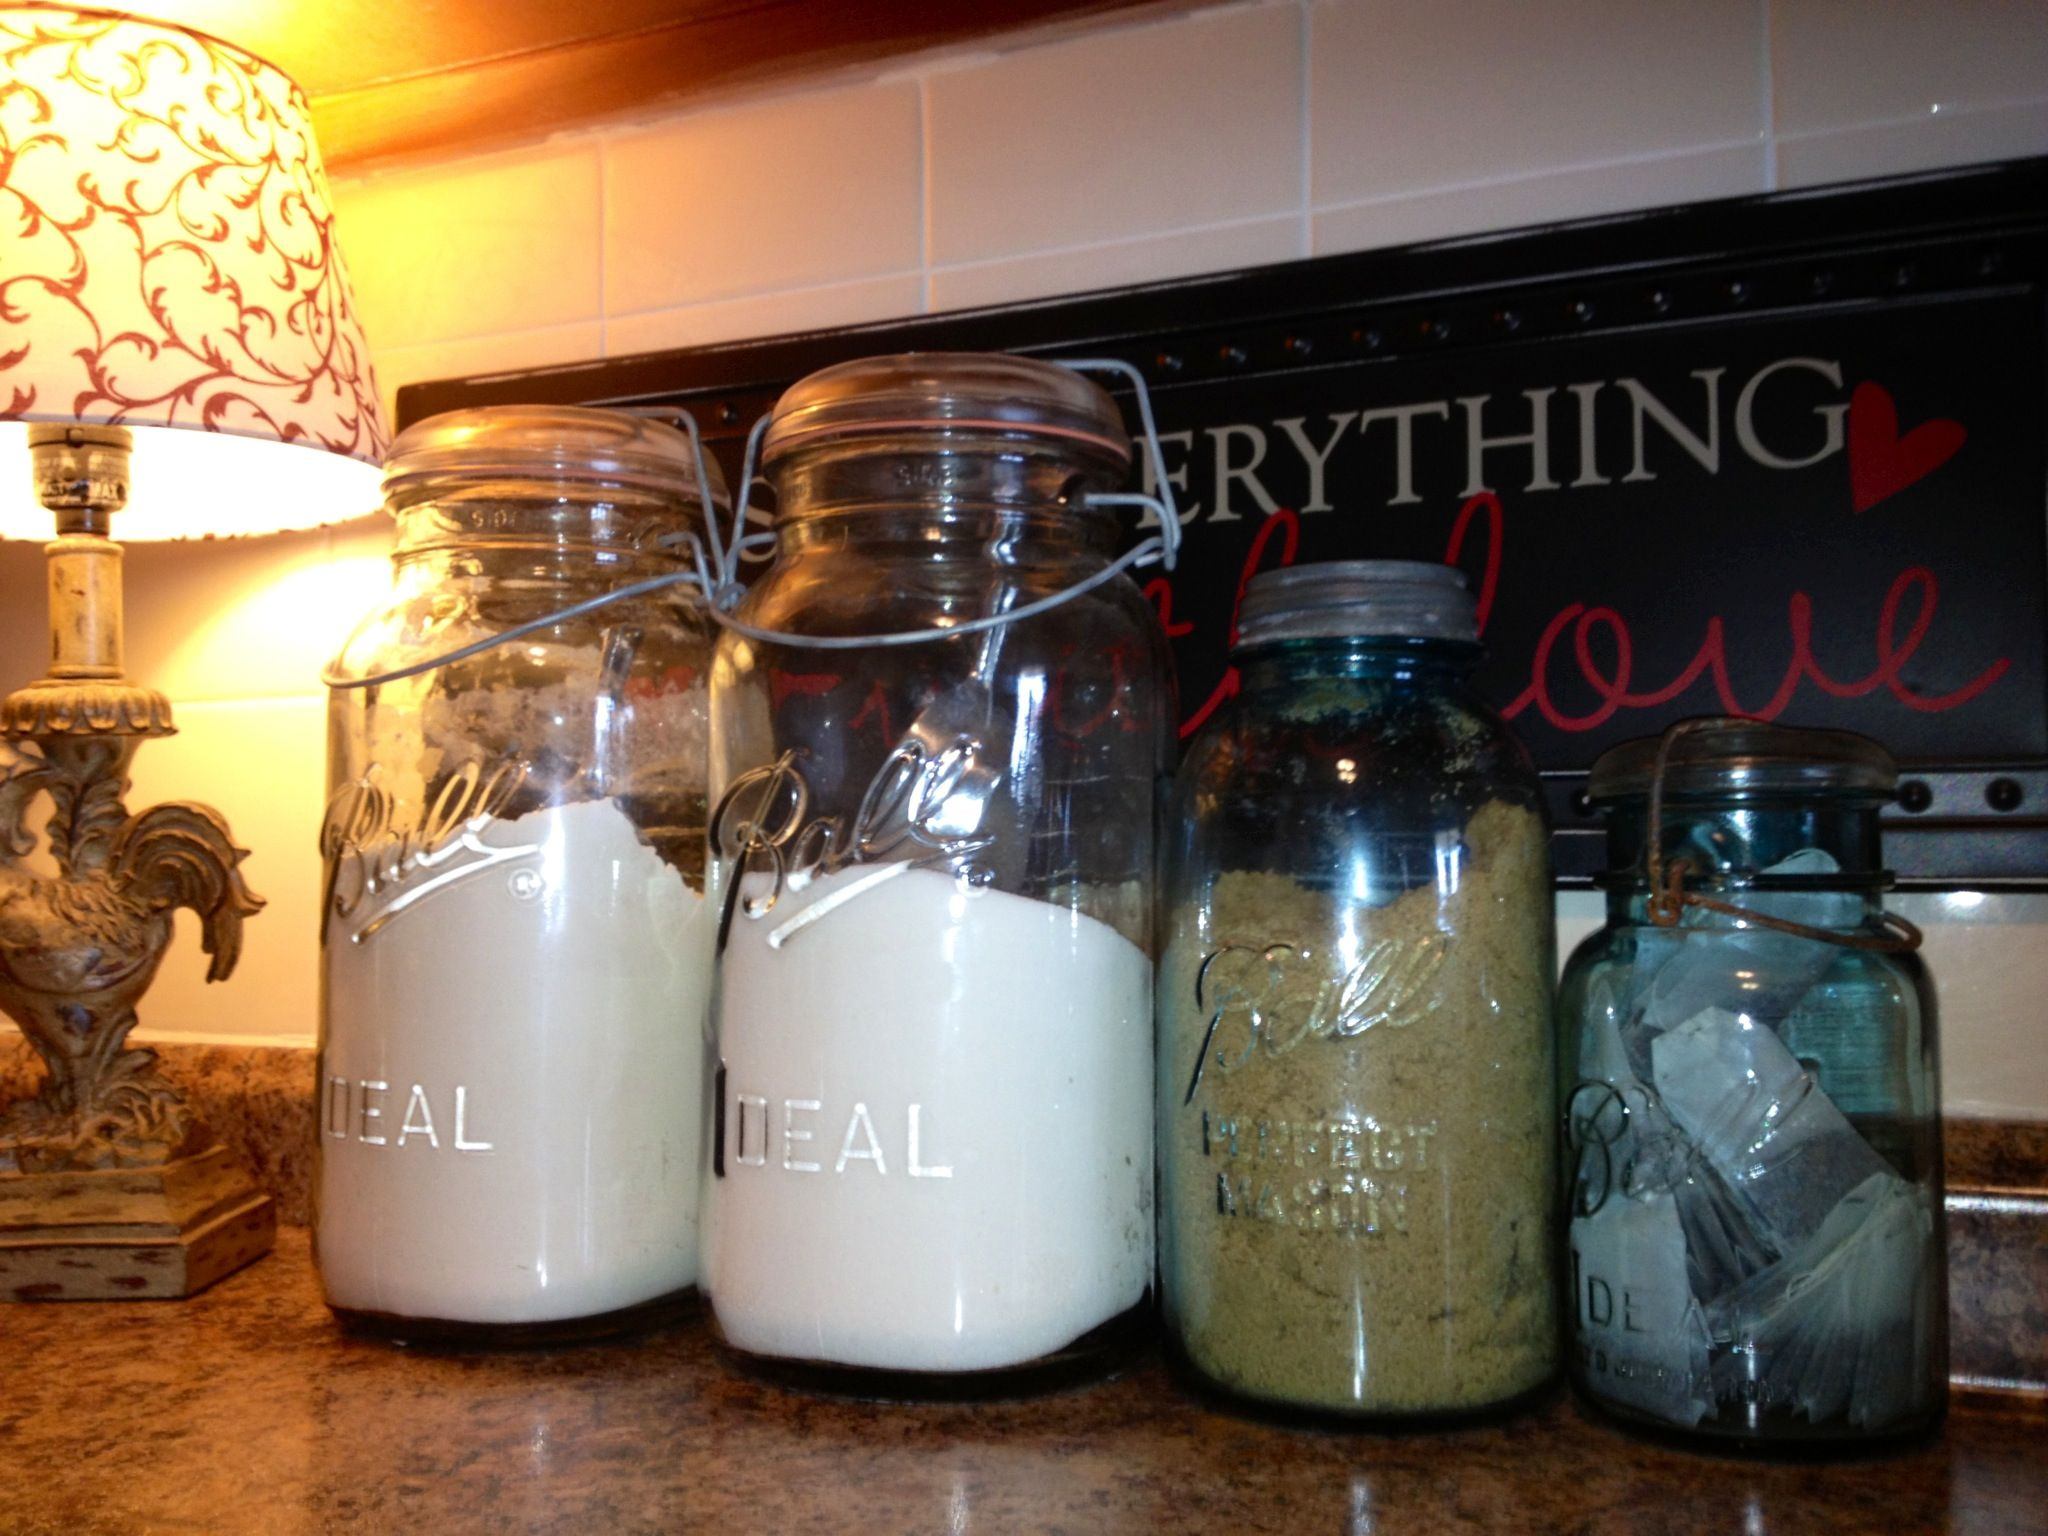 repurpose vintage ball jars as a canister set for flour sugar repurpose vintage ball jars as a canister set for flour sugar brown sugar tea in your kitchen